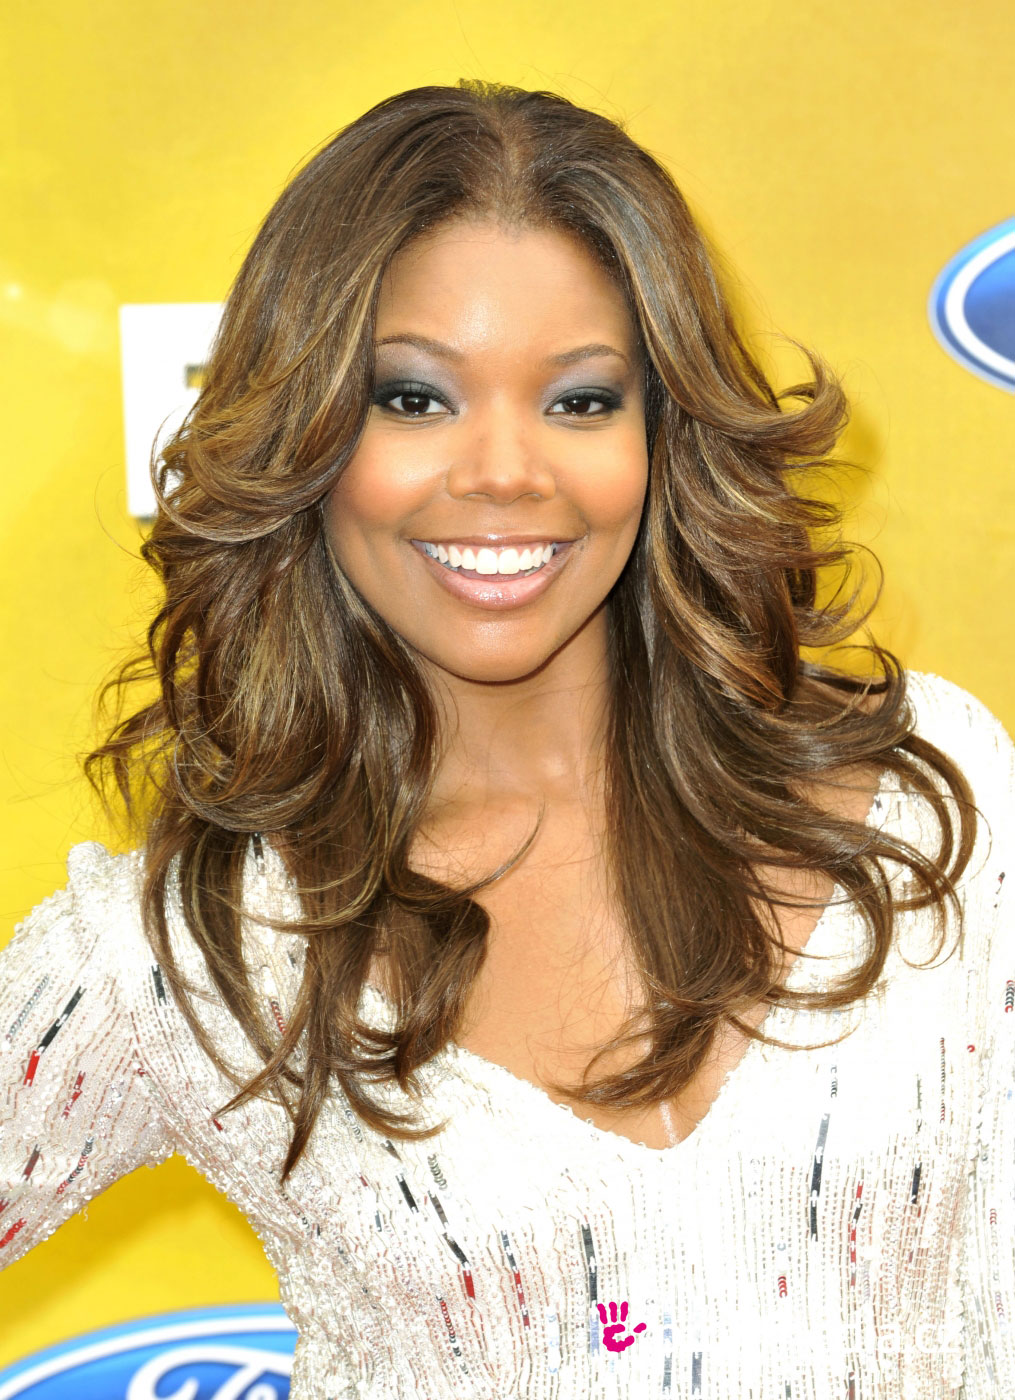 Fabulous Gabrielle Union Hairstyle Easyhairstyler Short Hairstyles For Black Women Fulllsitofus